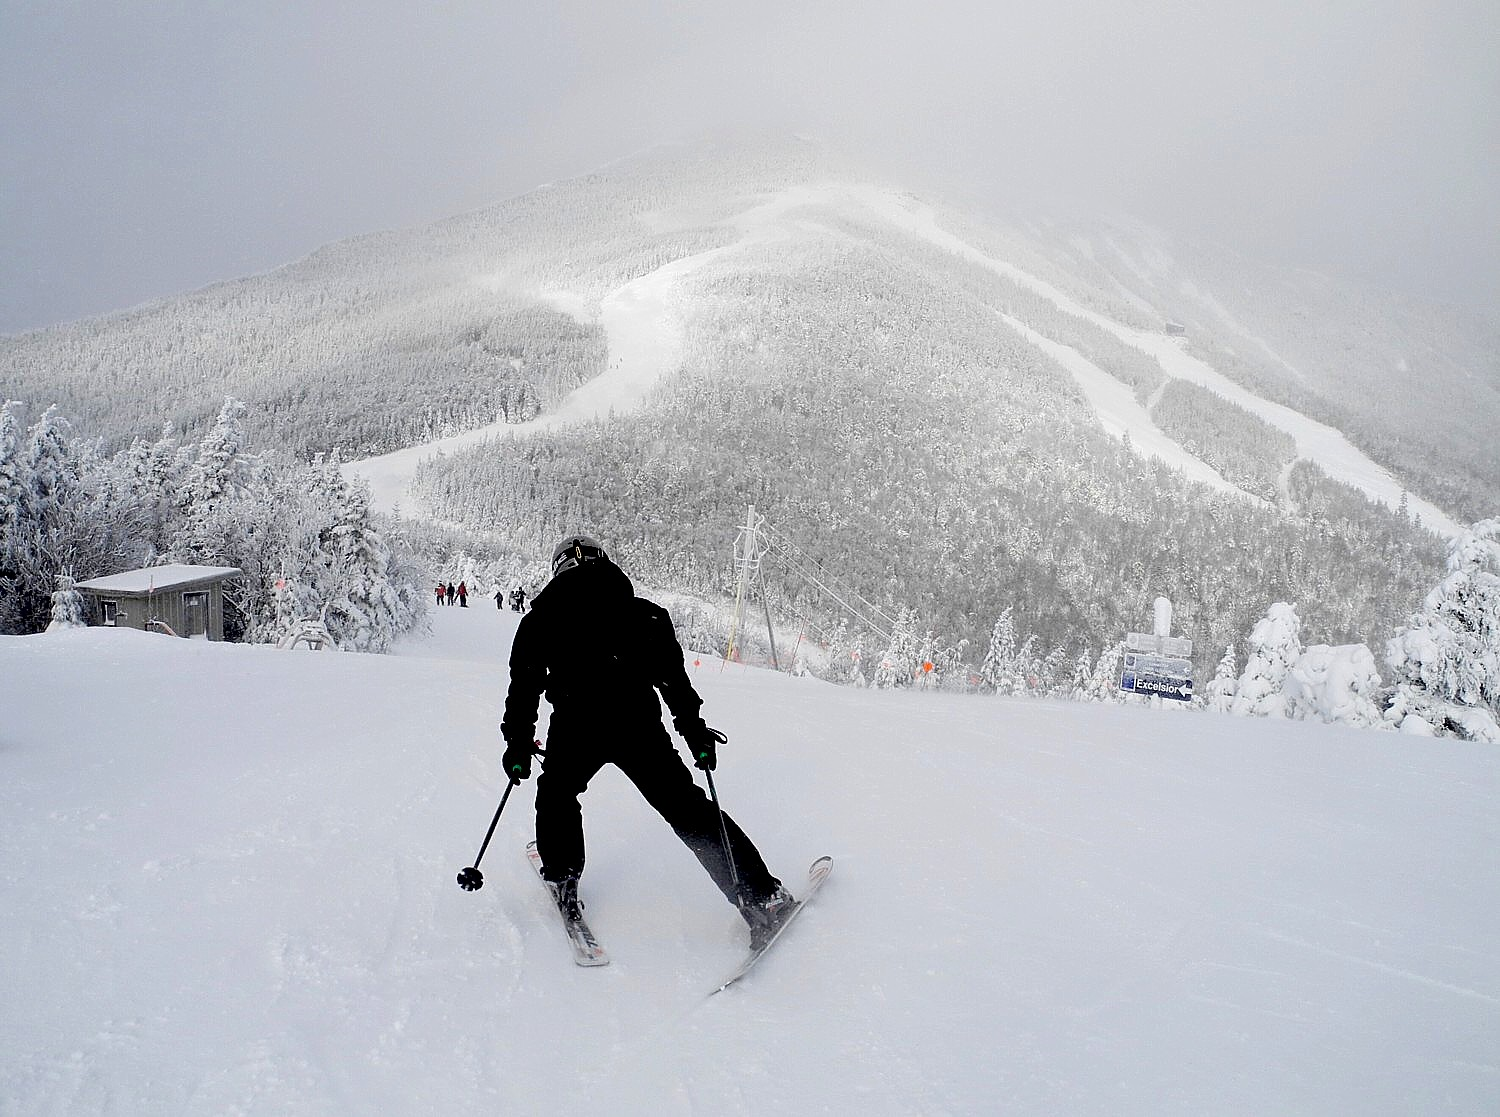 New York's Olympic Regional Development Authority Continues to Make Improvements at Whiteface, Gore, Belleayre Mountains